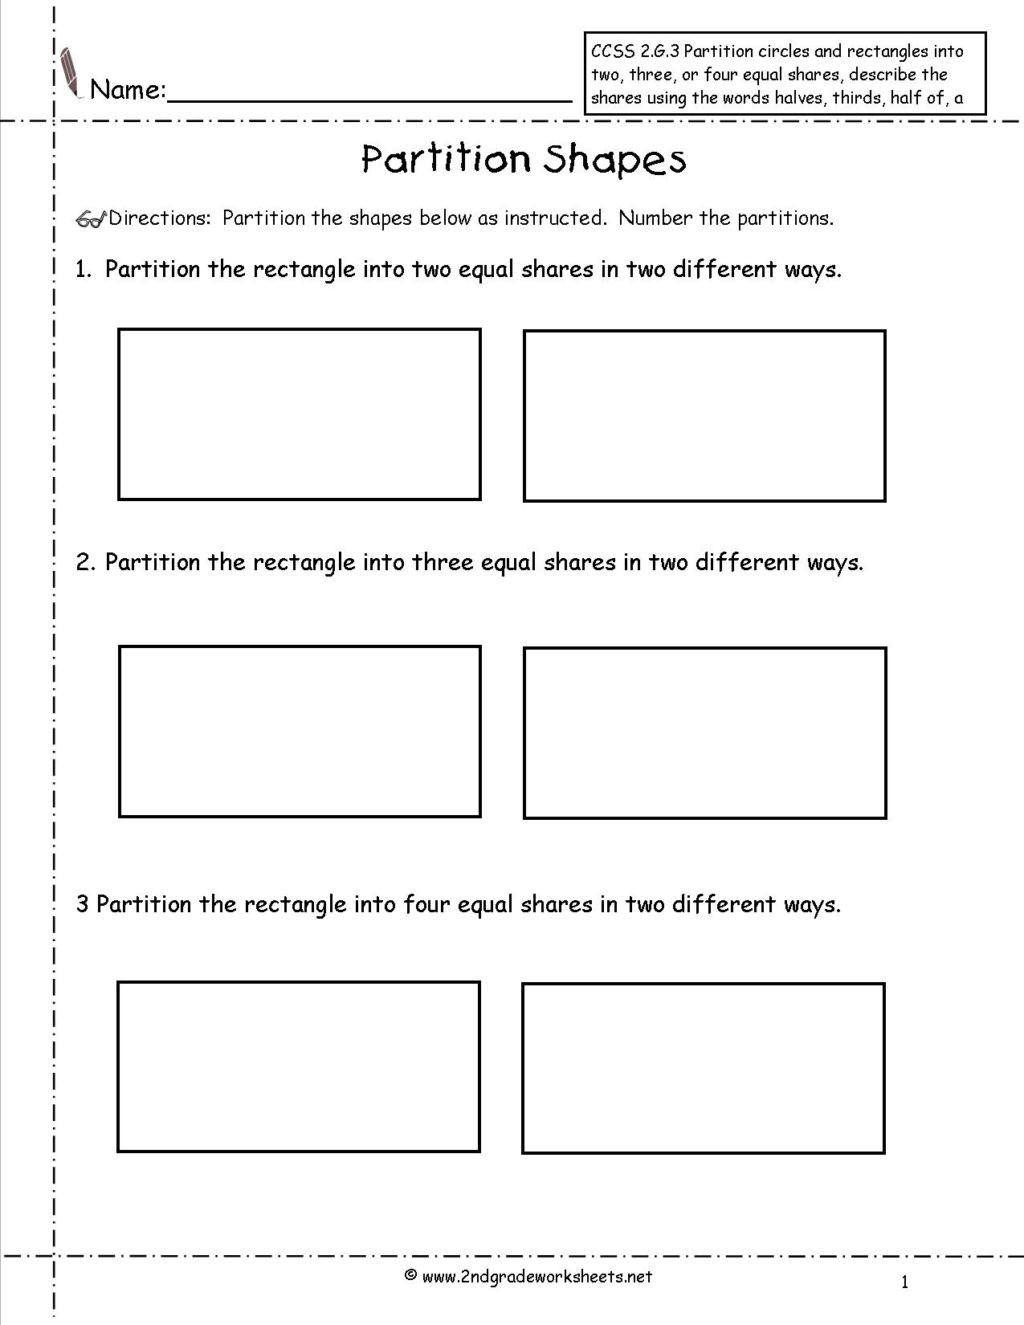 Shapes Worksheets for Grade 2 Worksheet Ccss G Worksheets Partition Shapes Gradetry